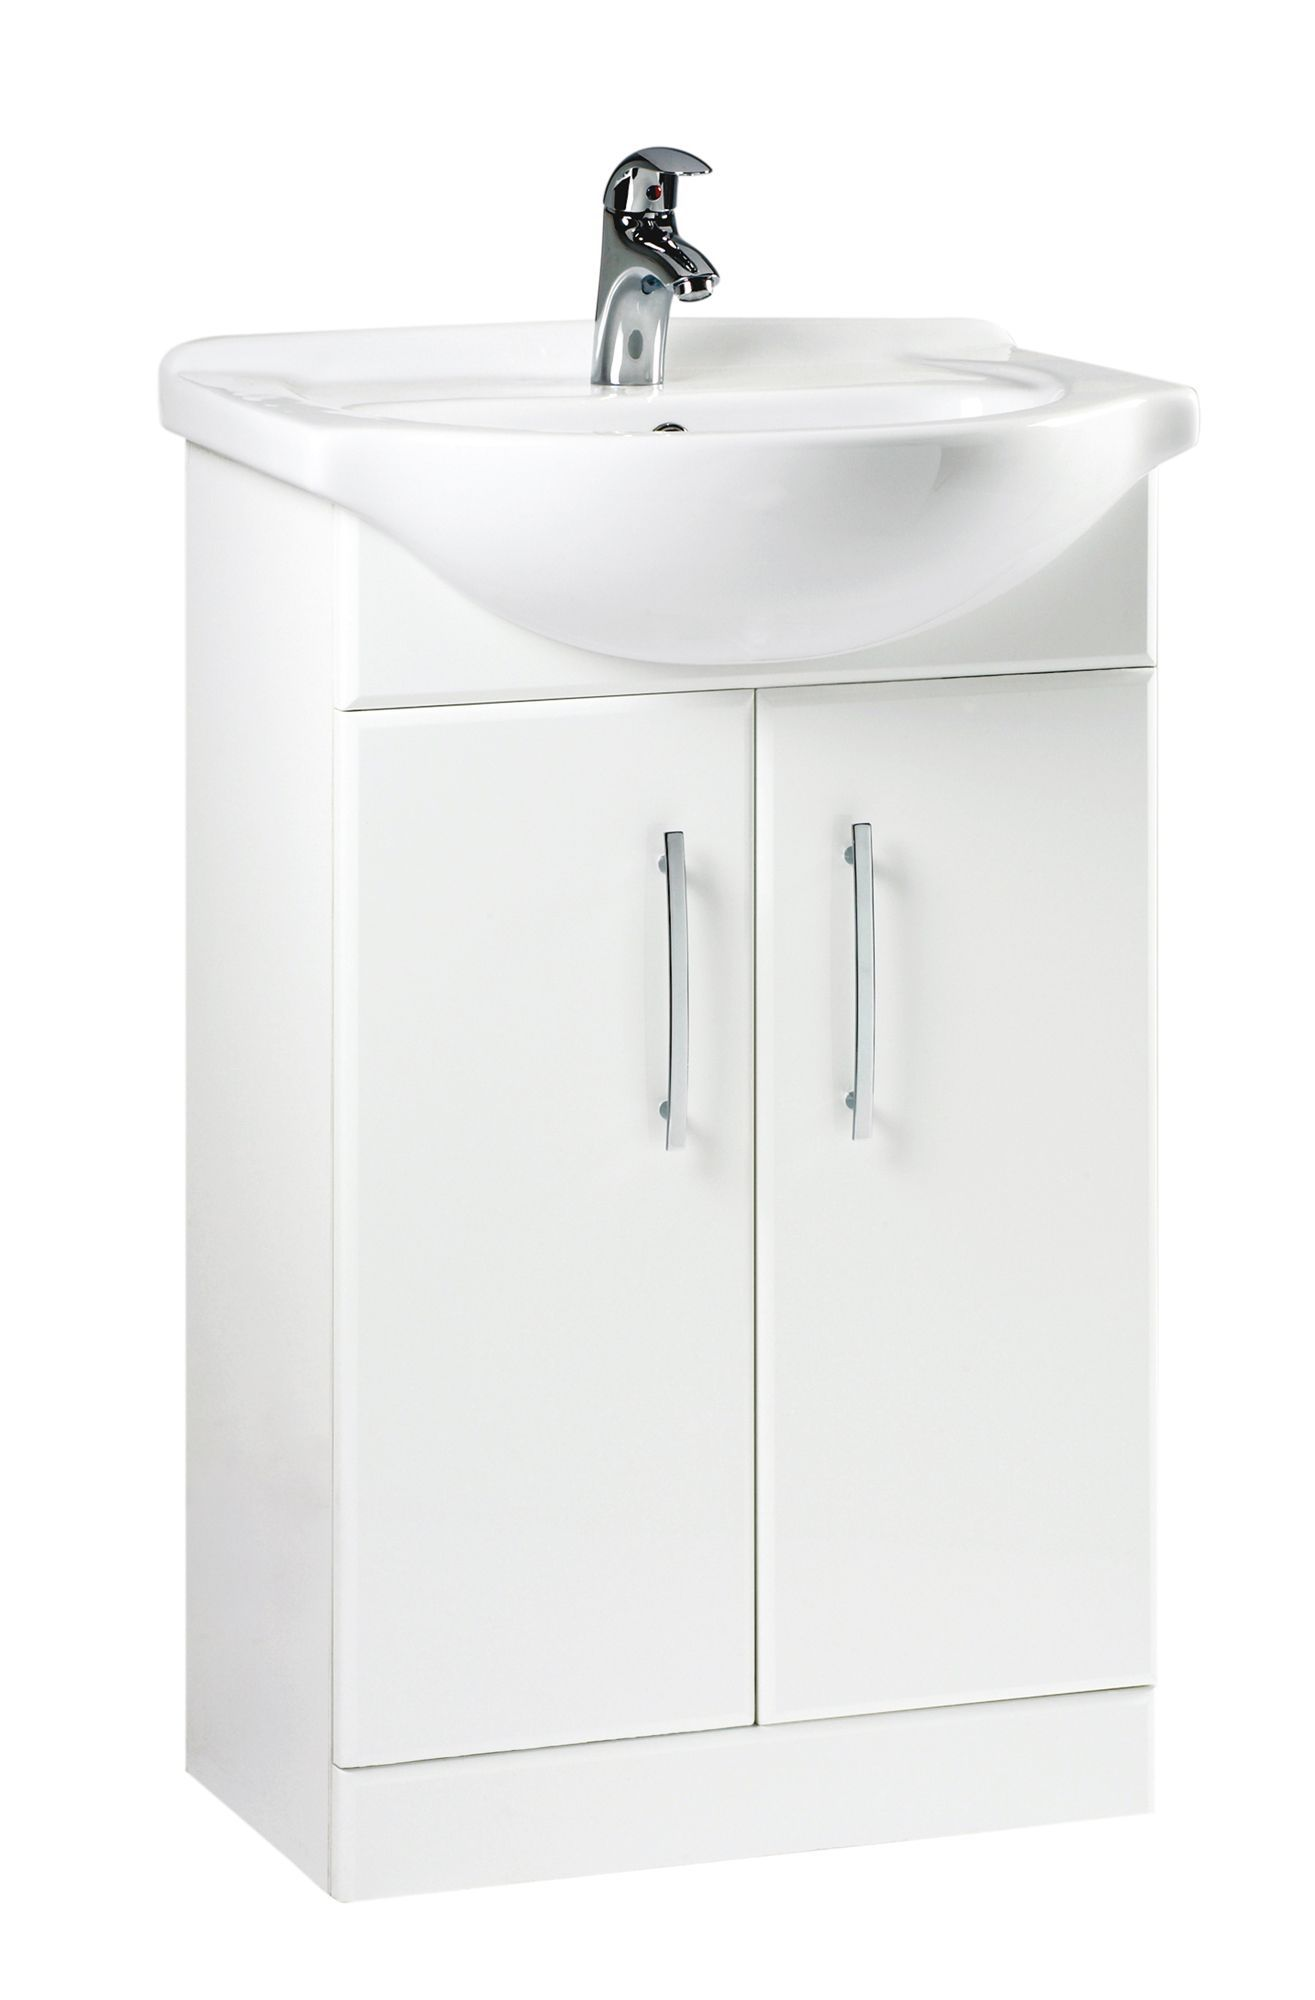 Bathroom Cabinets Uk Bq Bq White Vanity Unit Basin Departments Diy At Bq